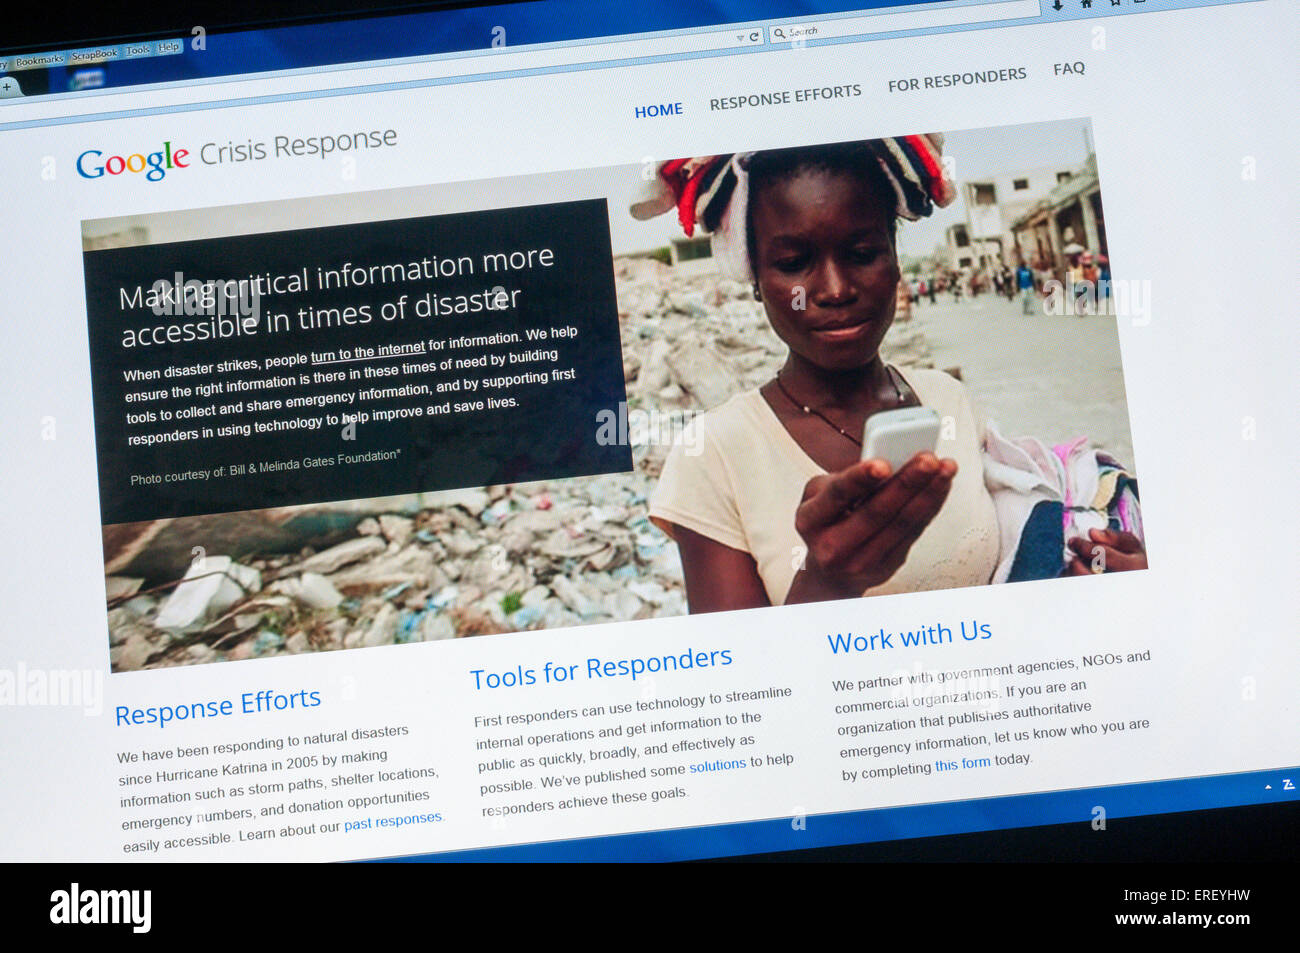 The home page of the Google Crisis Response web site. - Stock Image